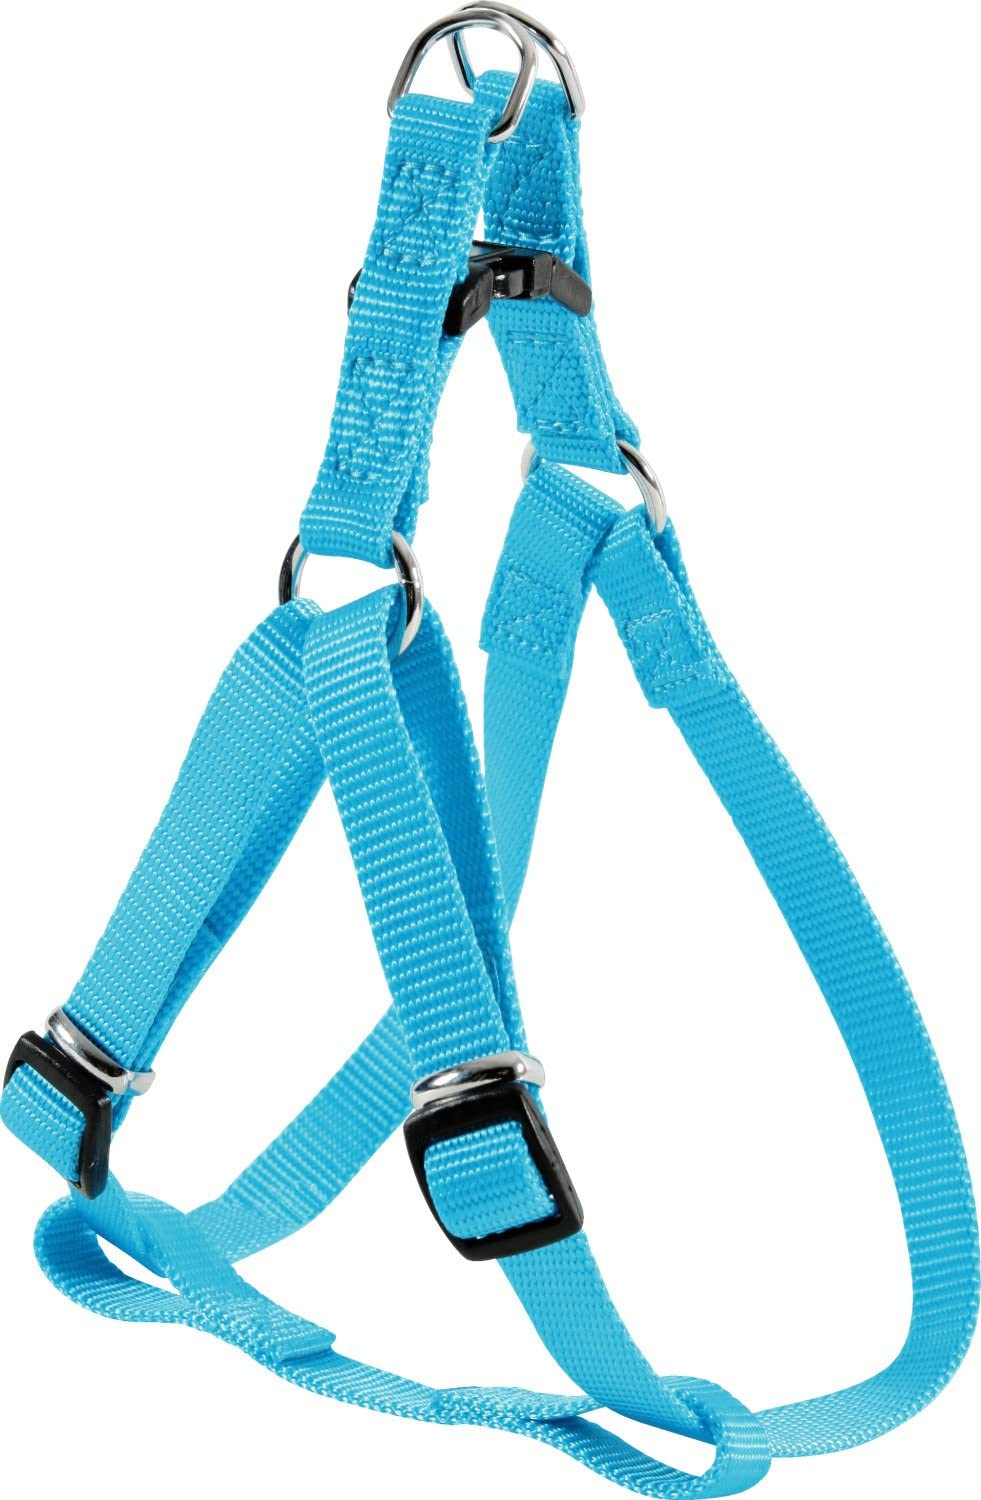 Zolux Nylon Strap Adjustable Free Shipping Cheap Bargain Gift Dog Year-end annual account Harness Turquoise Plain Colours